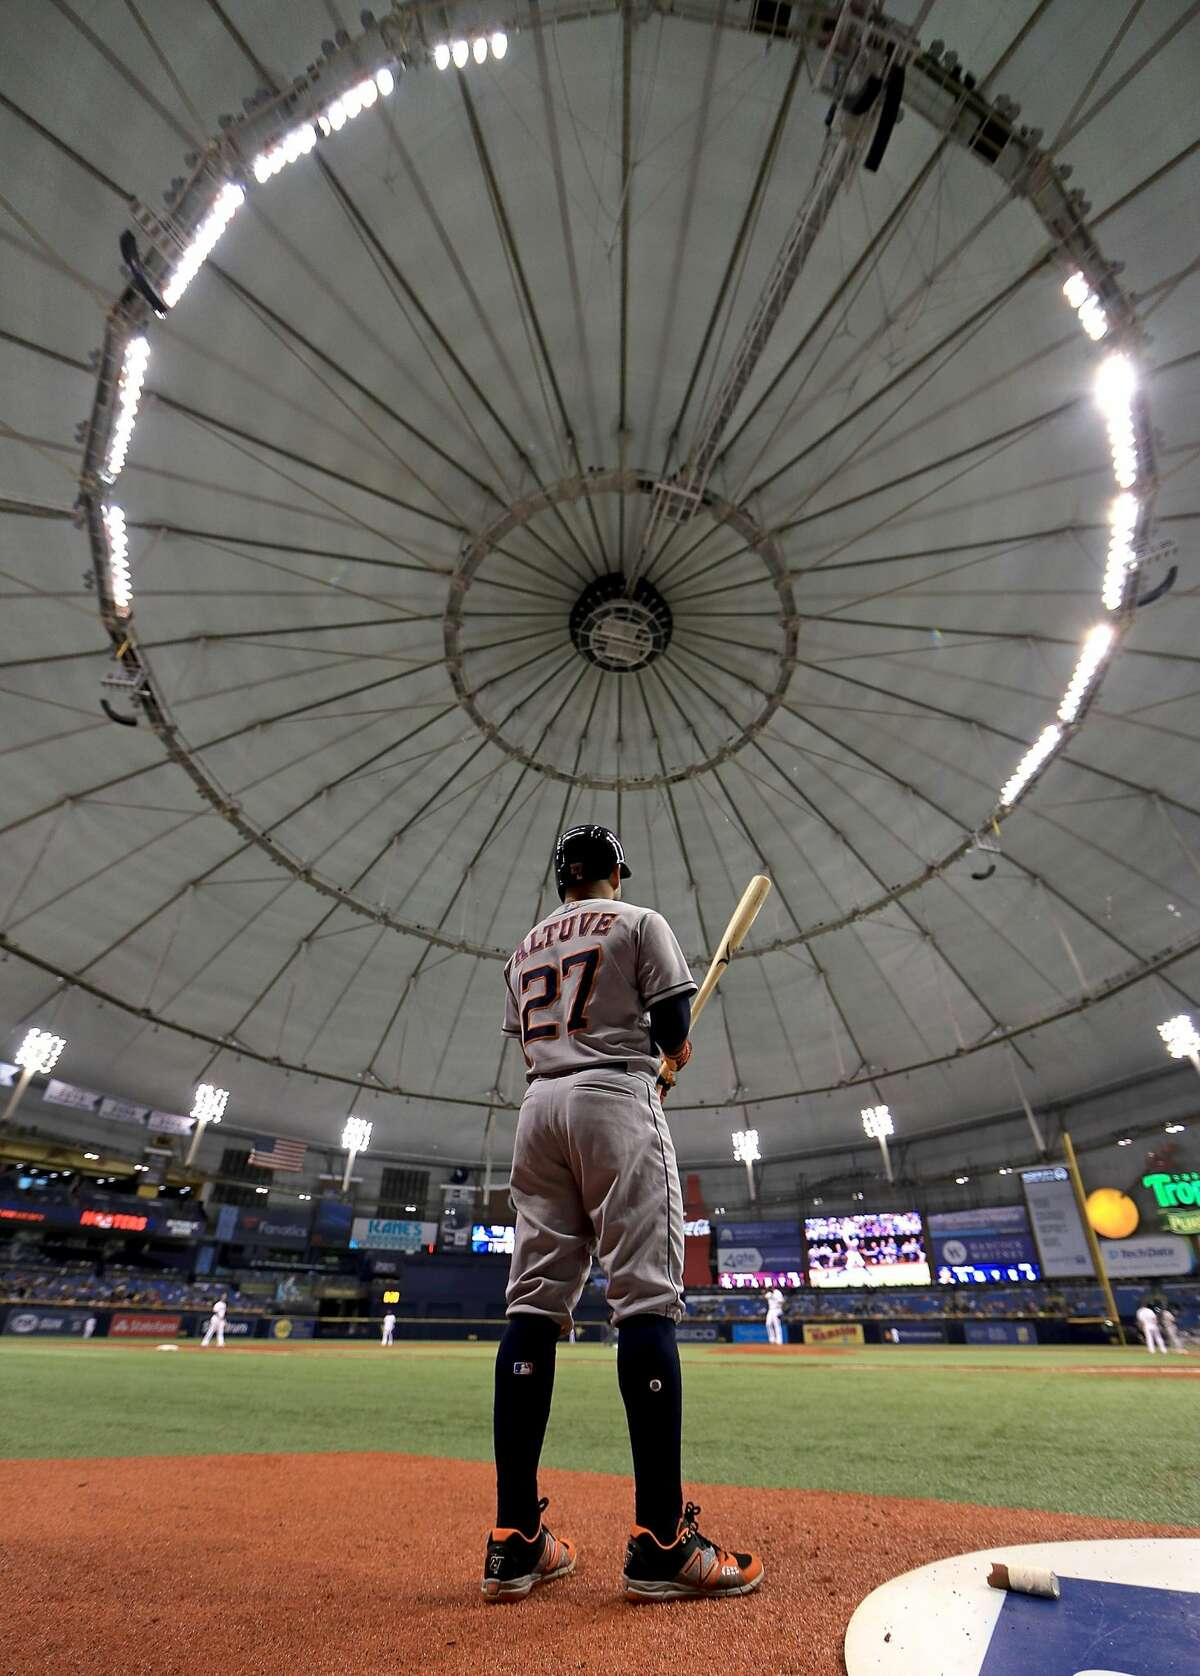 ST PETERSBURG, FL - JUNE 29: Jose Altuve #27 of the Houston Astros looks on during a game against the Tampa Bay Rays at Tropicana Field on June 29, 2018 in St Petersburg, Florida. (Photo by Mike Ehrmann/Getty Images)